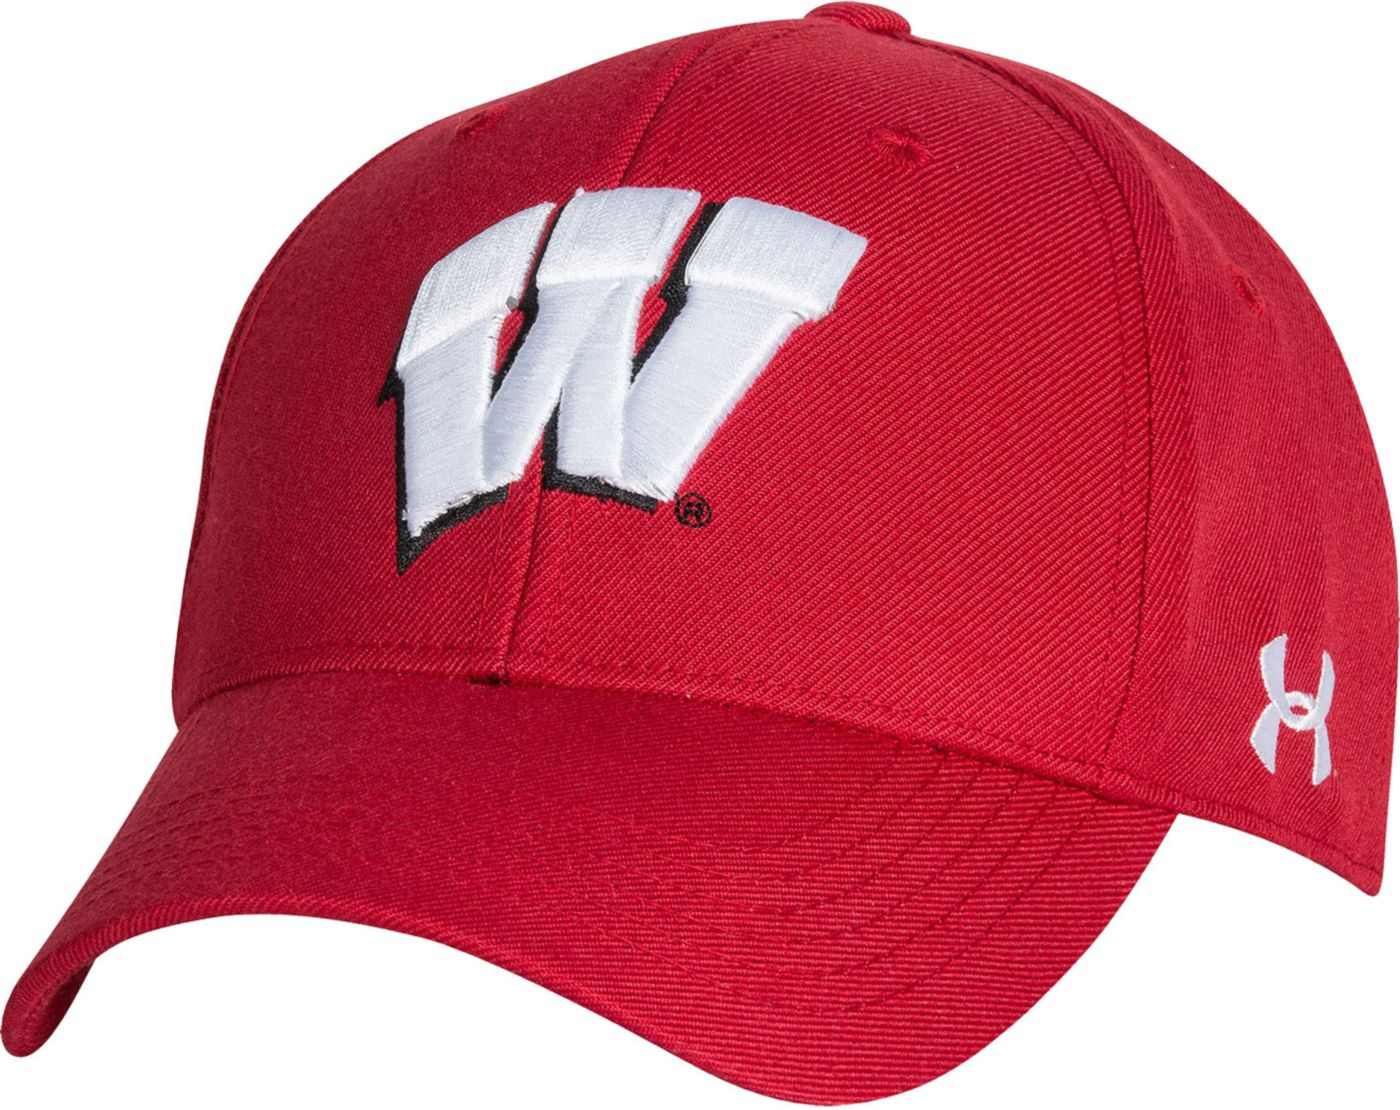 Under Armour Men's Wisconsin Badgers Red Adjustable Hat